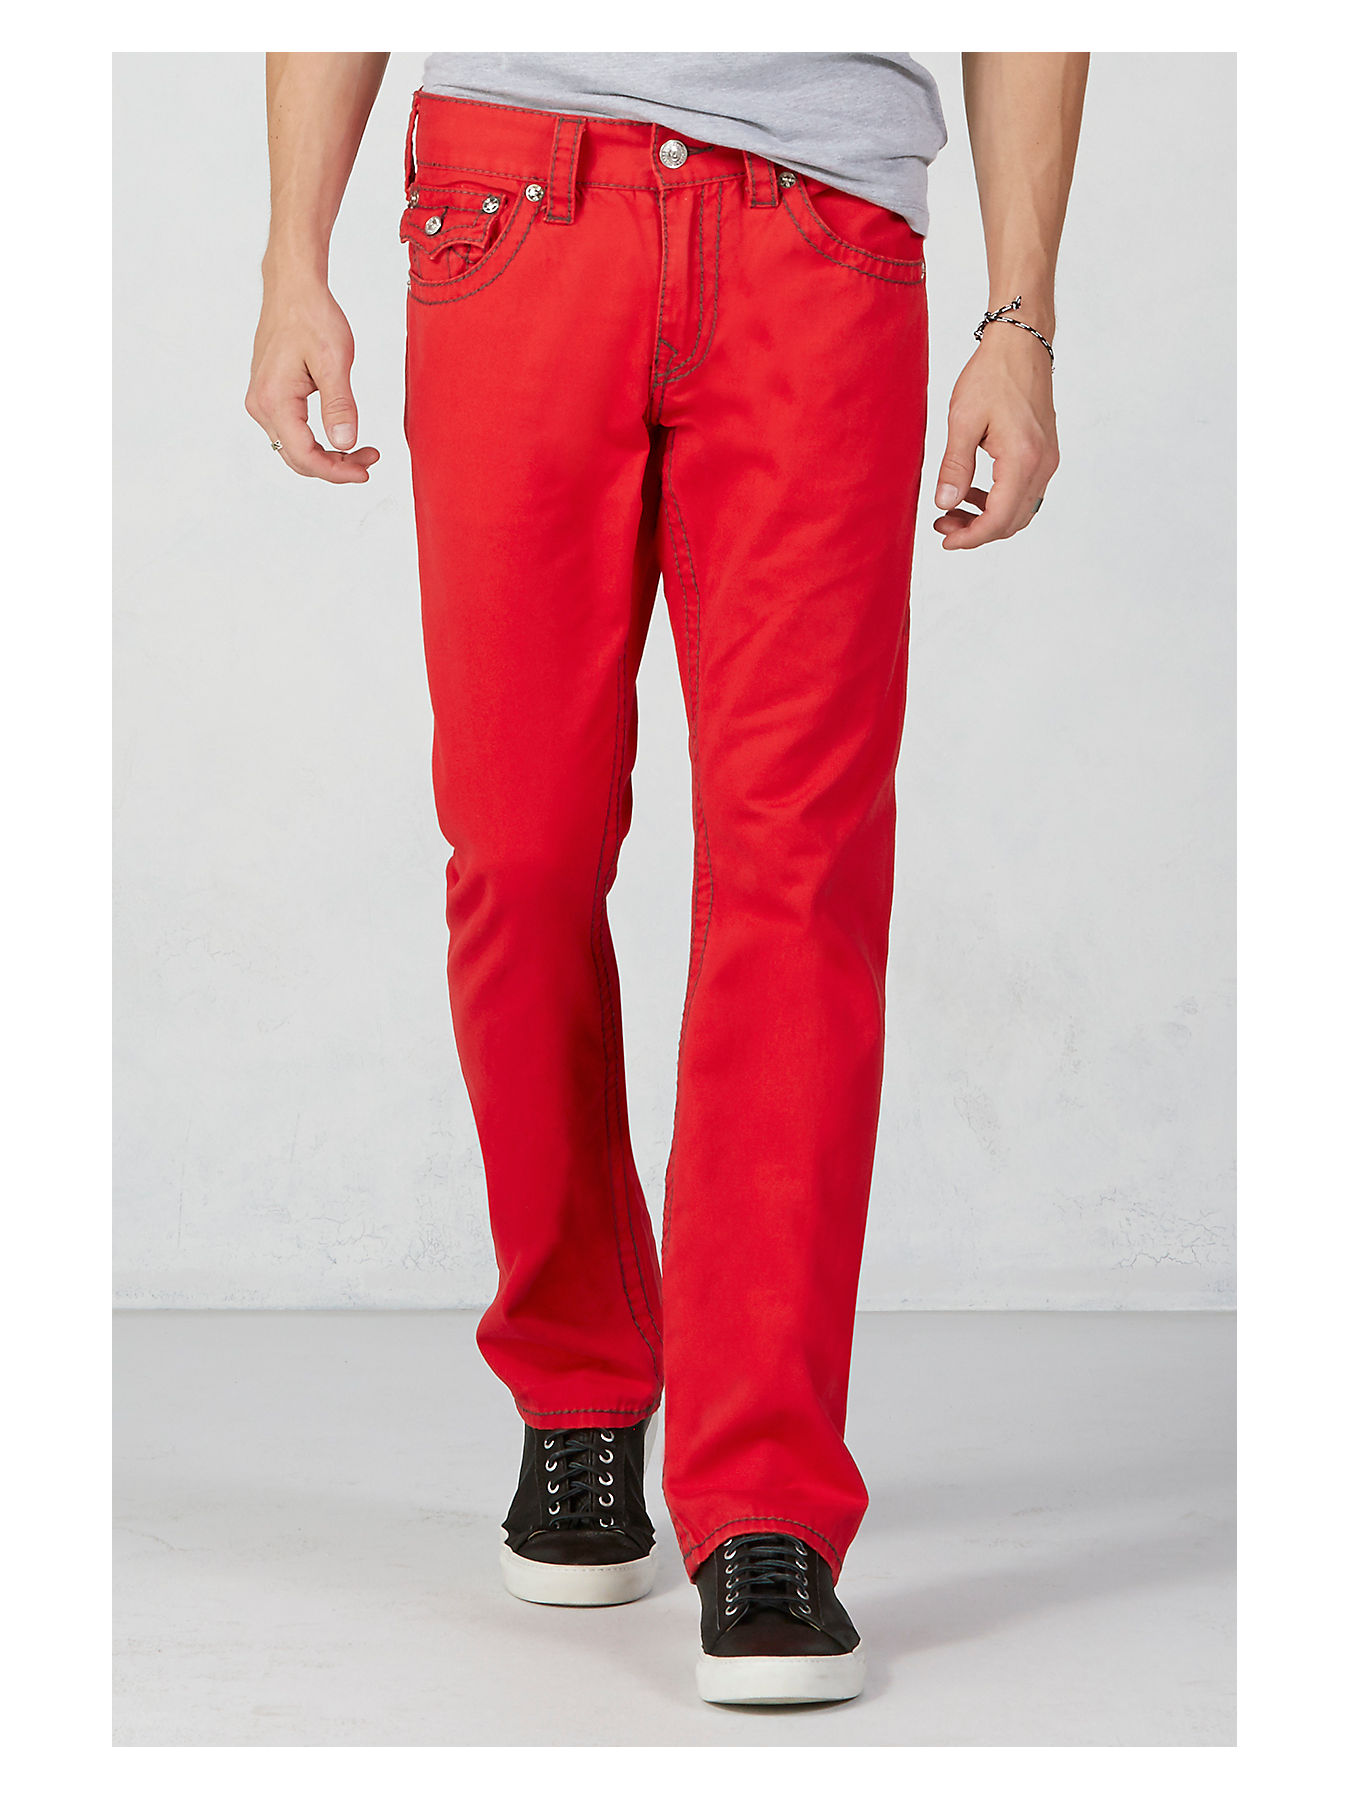 6a36520ef HAND PICKED RICKY STRAIGHT MENS RED PANT - True Religion